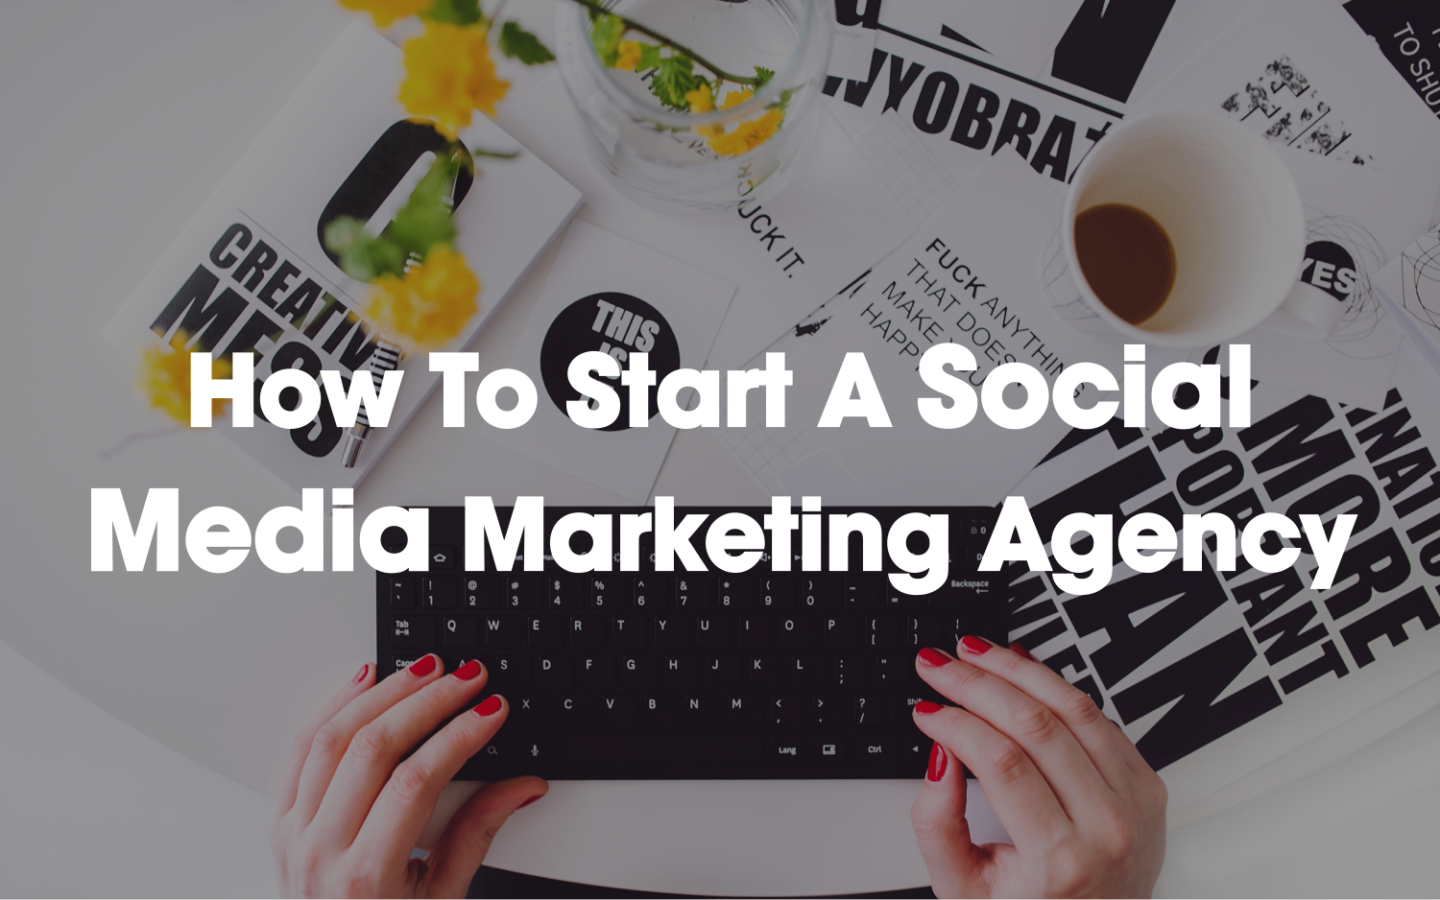 How to Start a Social Agency